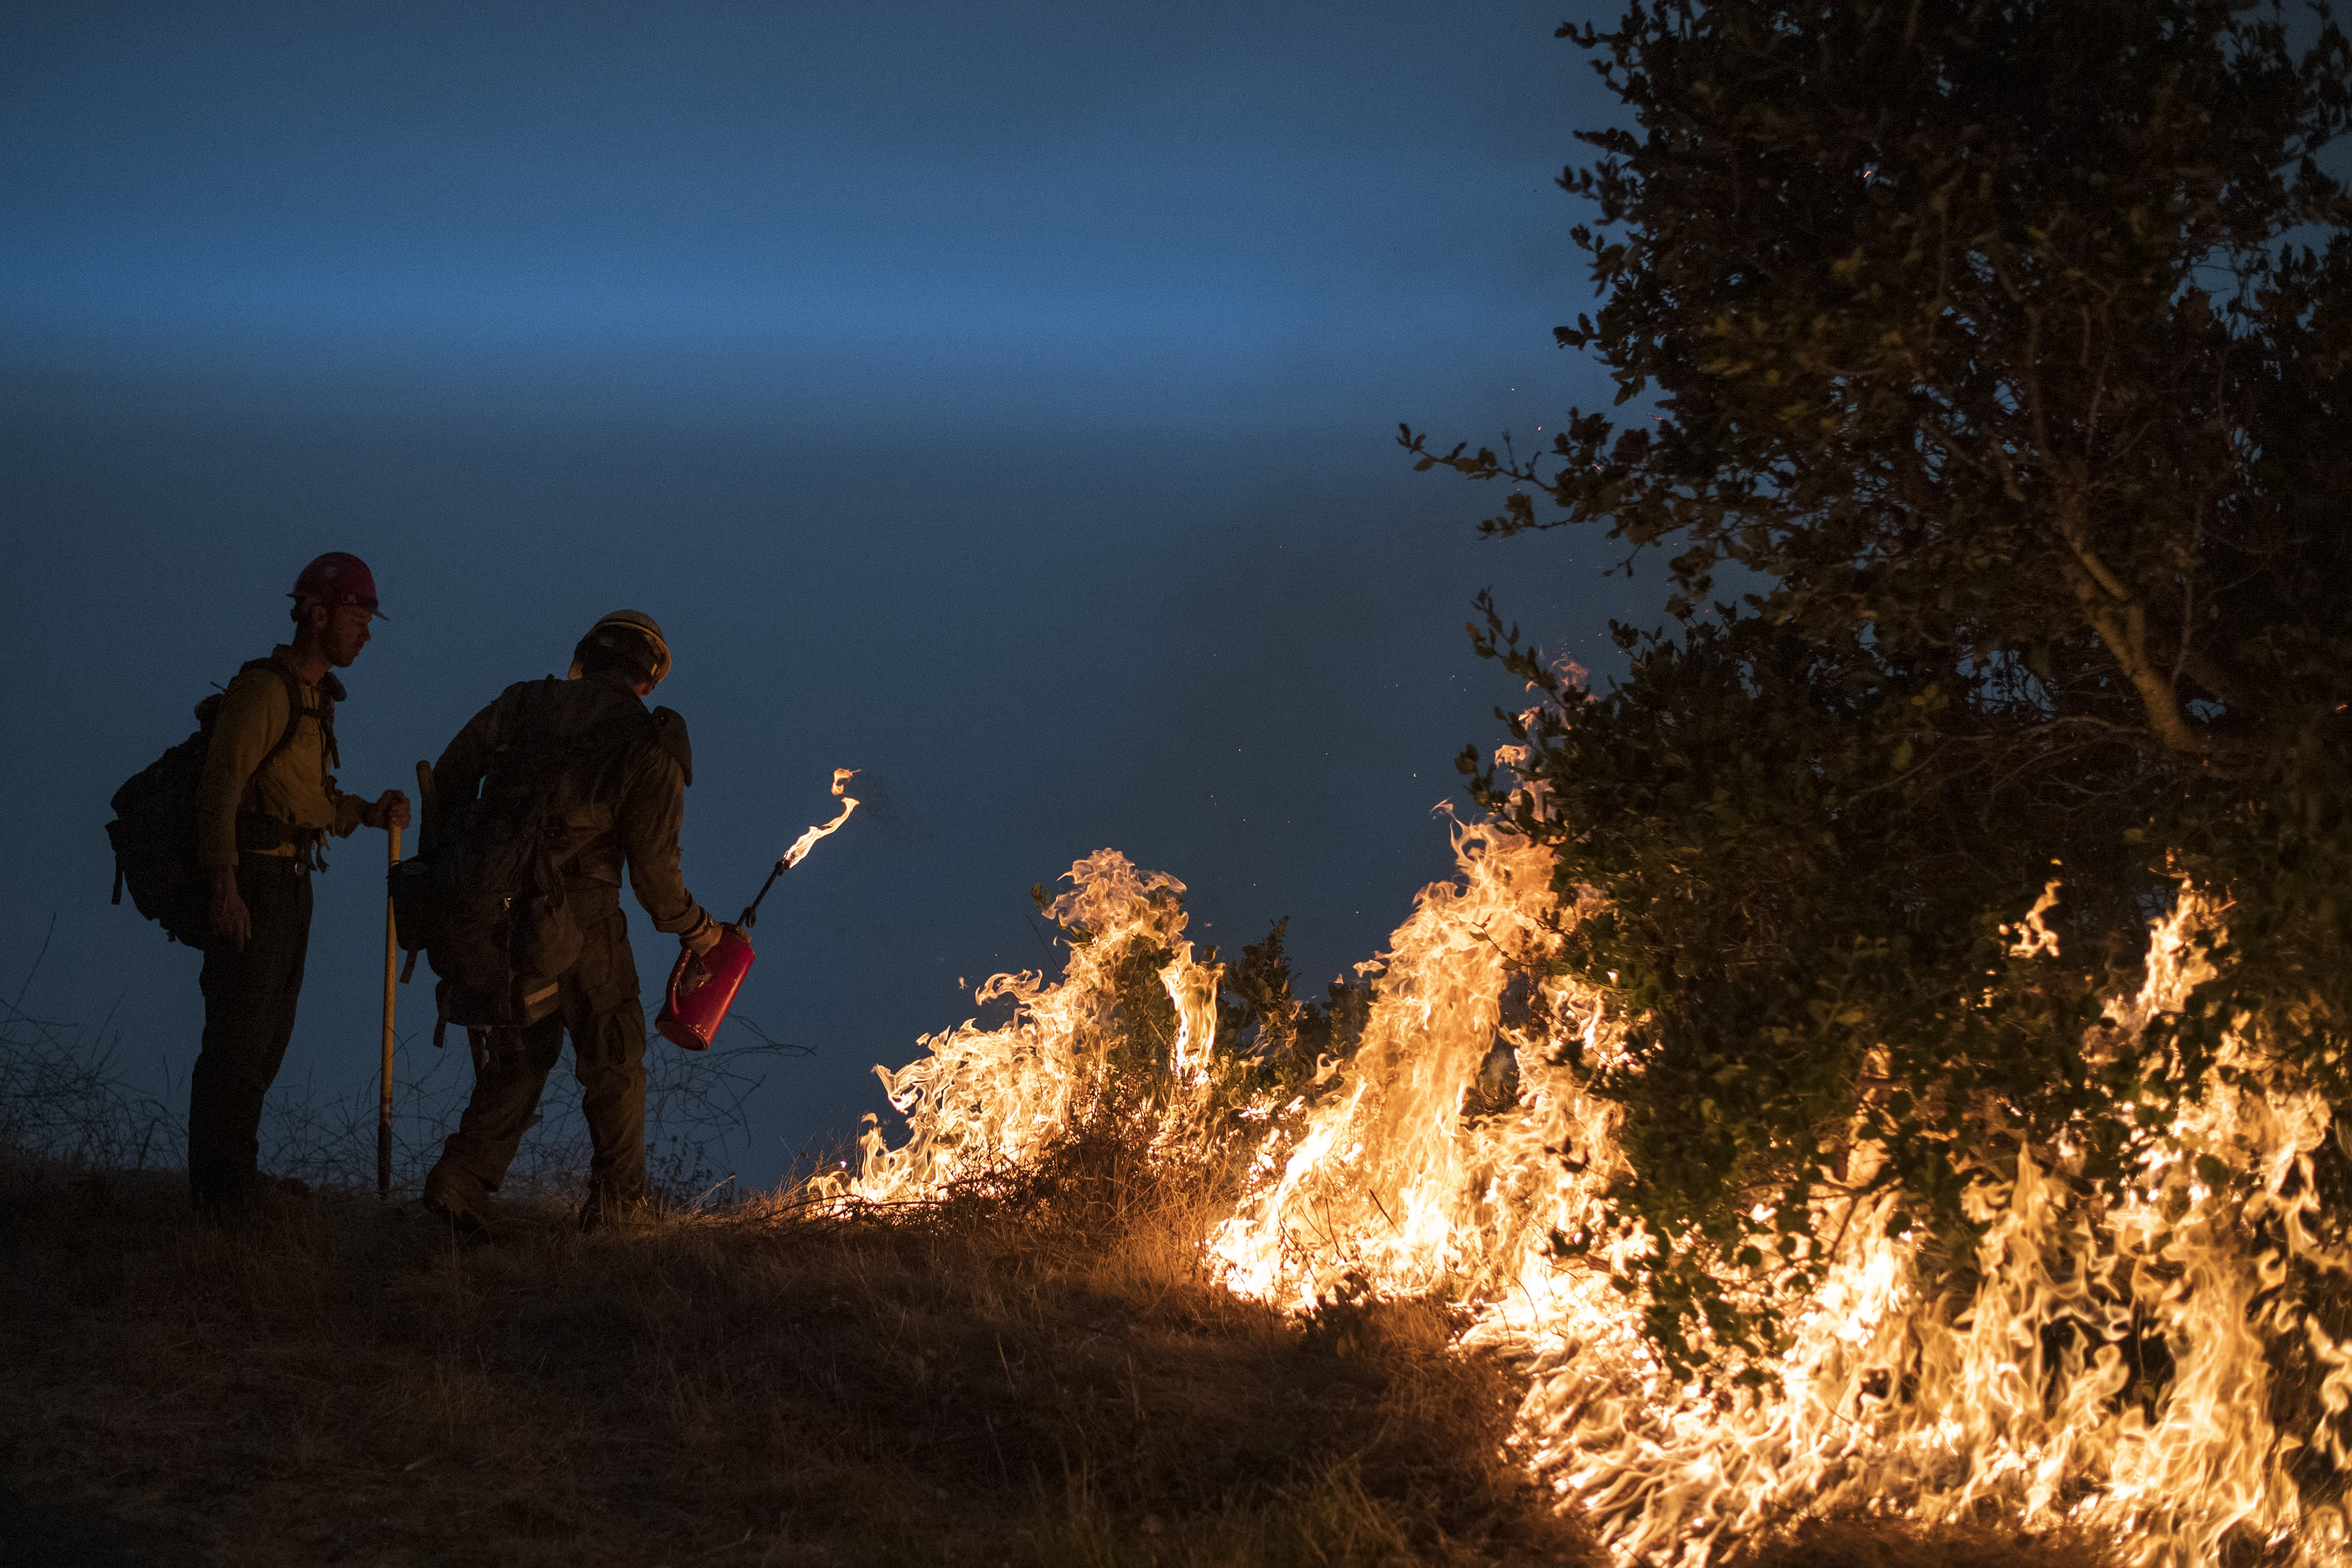 FILE - In this Sept. 11, 2020, file photo, firefighters light a controlled burn along Nacimiento-Fergusson Road to help contain the Dolan Fire near Big Sur, Calif. Rain showers fell Thursday, Sept. 24, 2020, on the northwestern edges of fire-ravaged California but forecasters warned residents to not be fooled: a new round of hot, dry and windy weather is expected by the weekend. (AP Photo/Nic Coury, File)